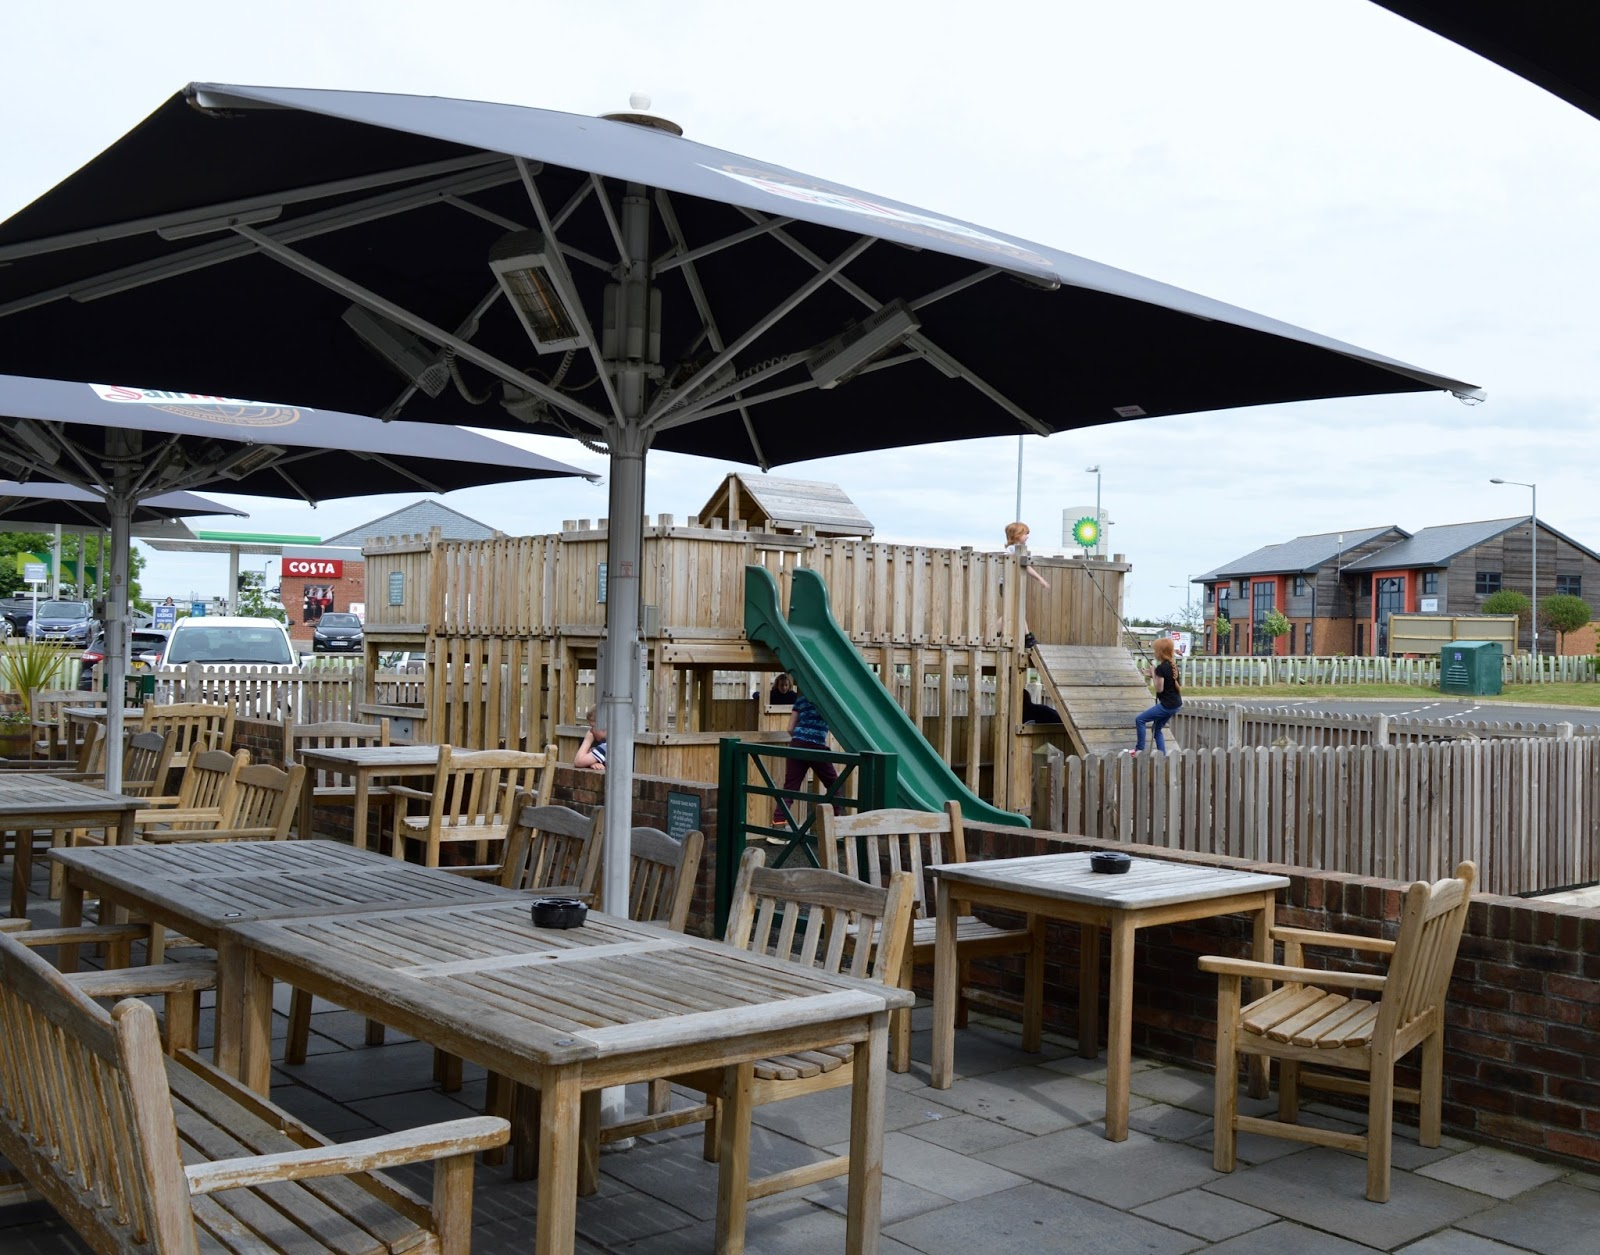 The Hog's Head Inn | A Child-friendly pub with a play area near Alnwick Garden and Castle, Northumberland  - outdoor play area